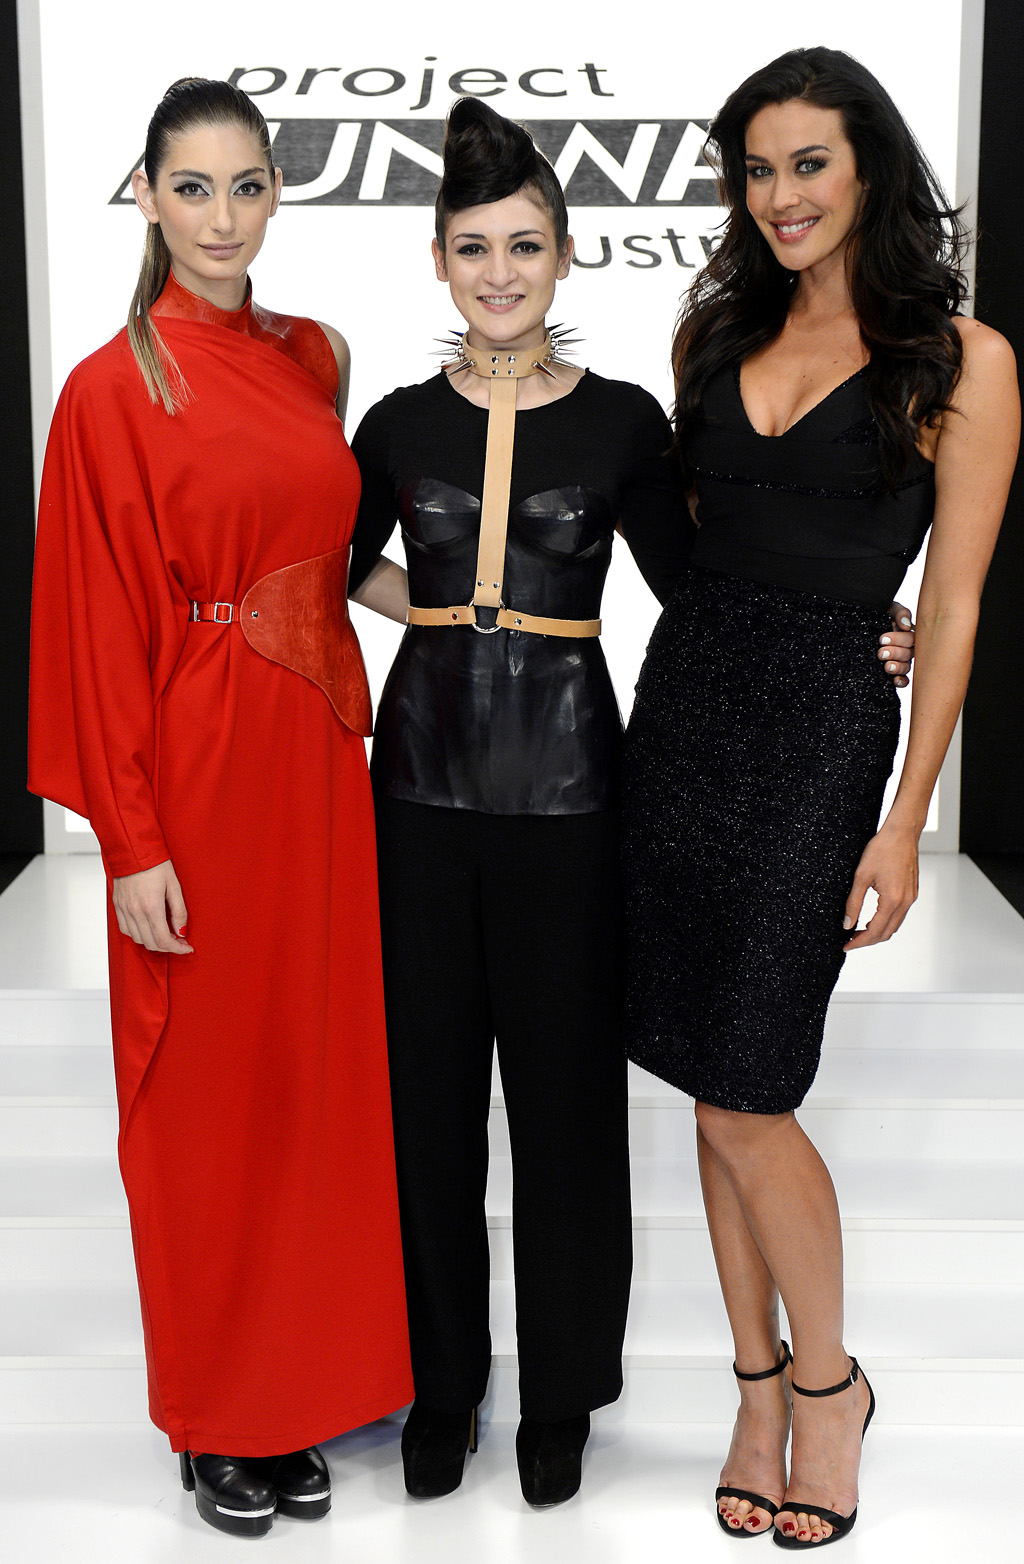 Project Runway winner Christina Exie pictured with host Megan Gale, right, and a model wearing a piece from her winning collection.